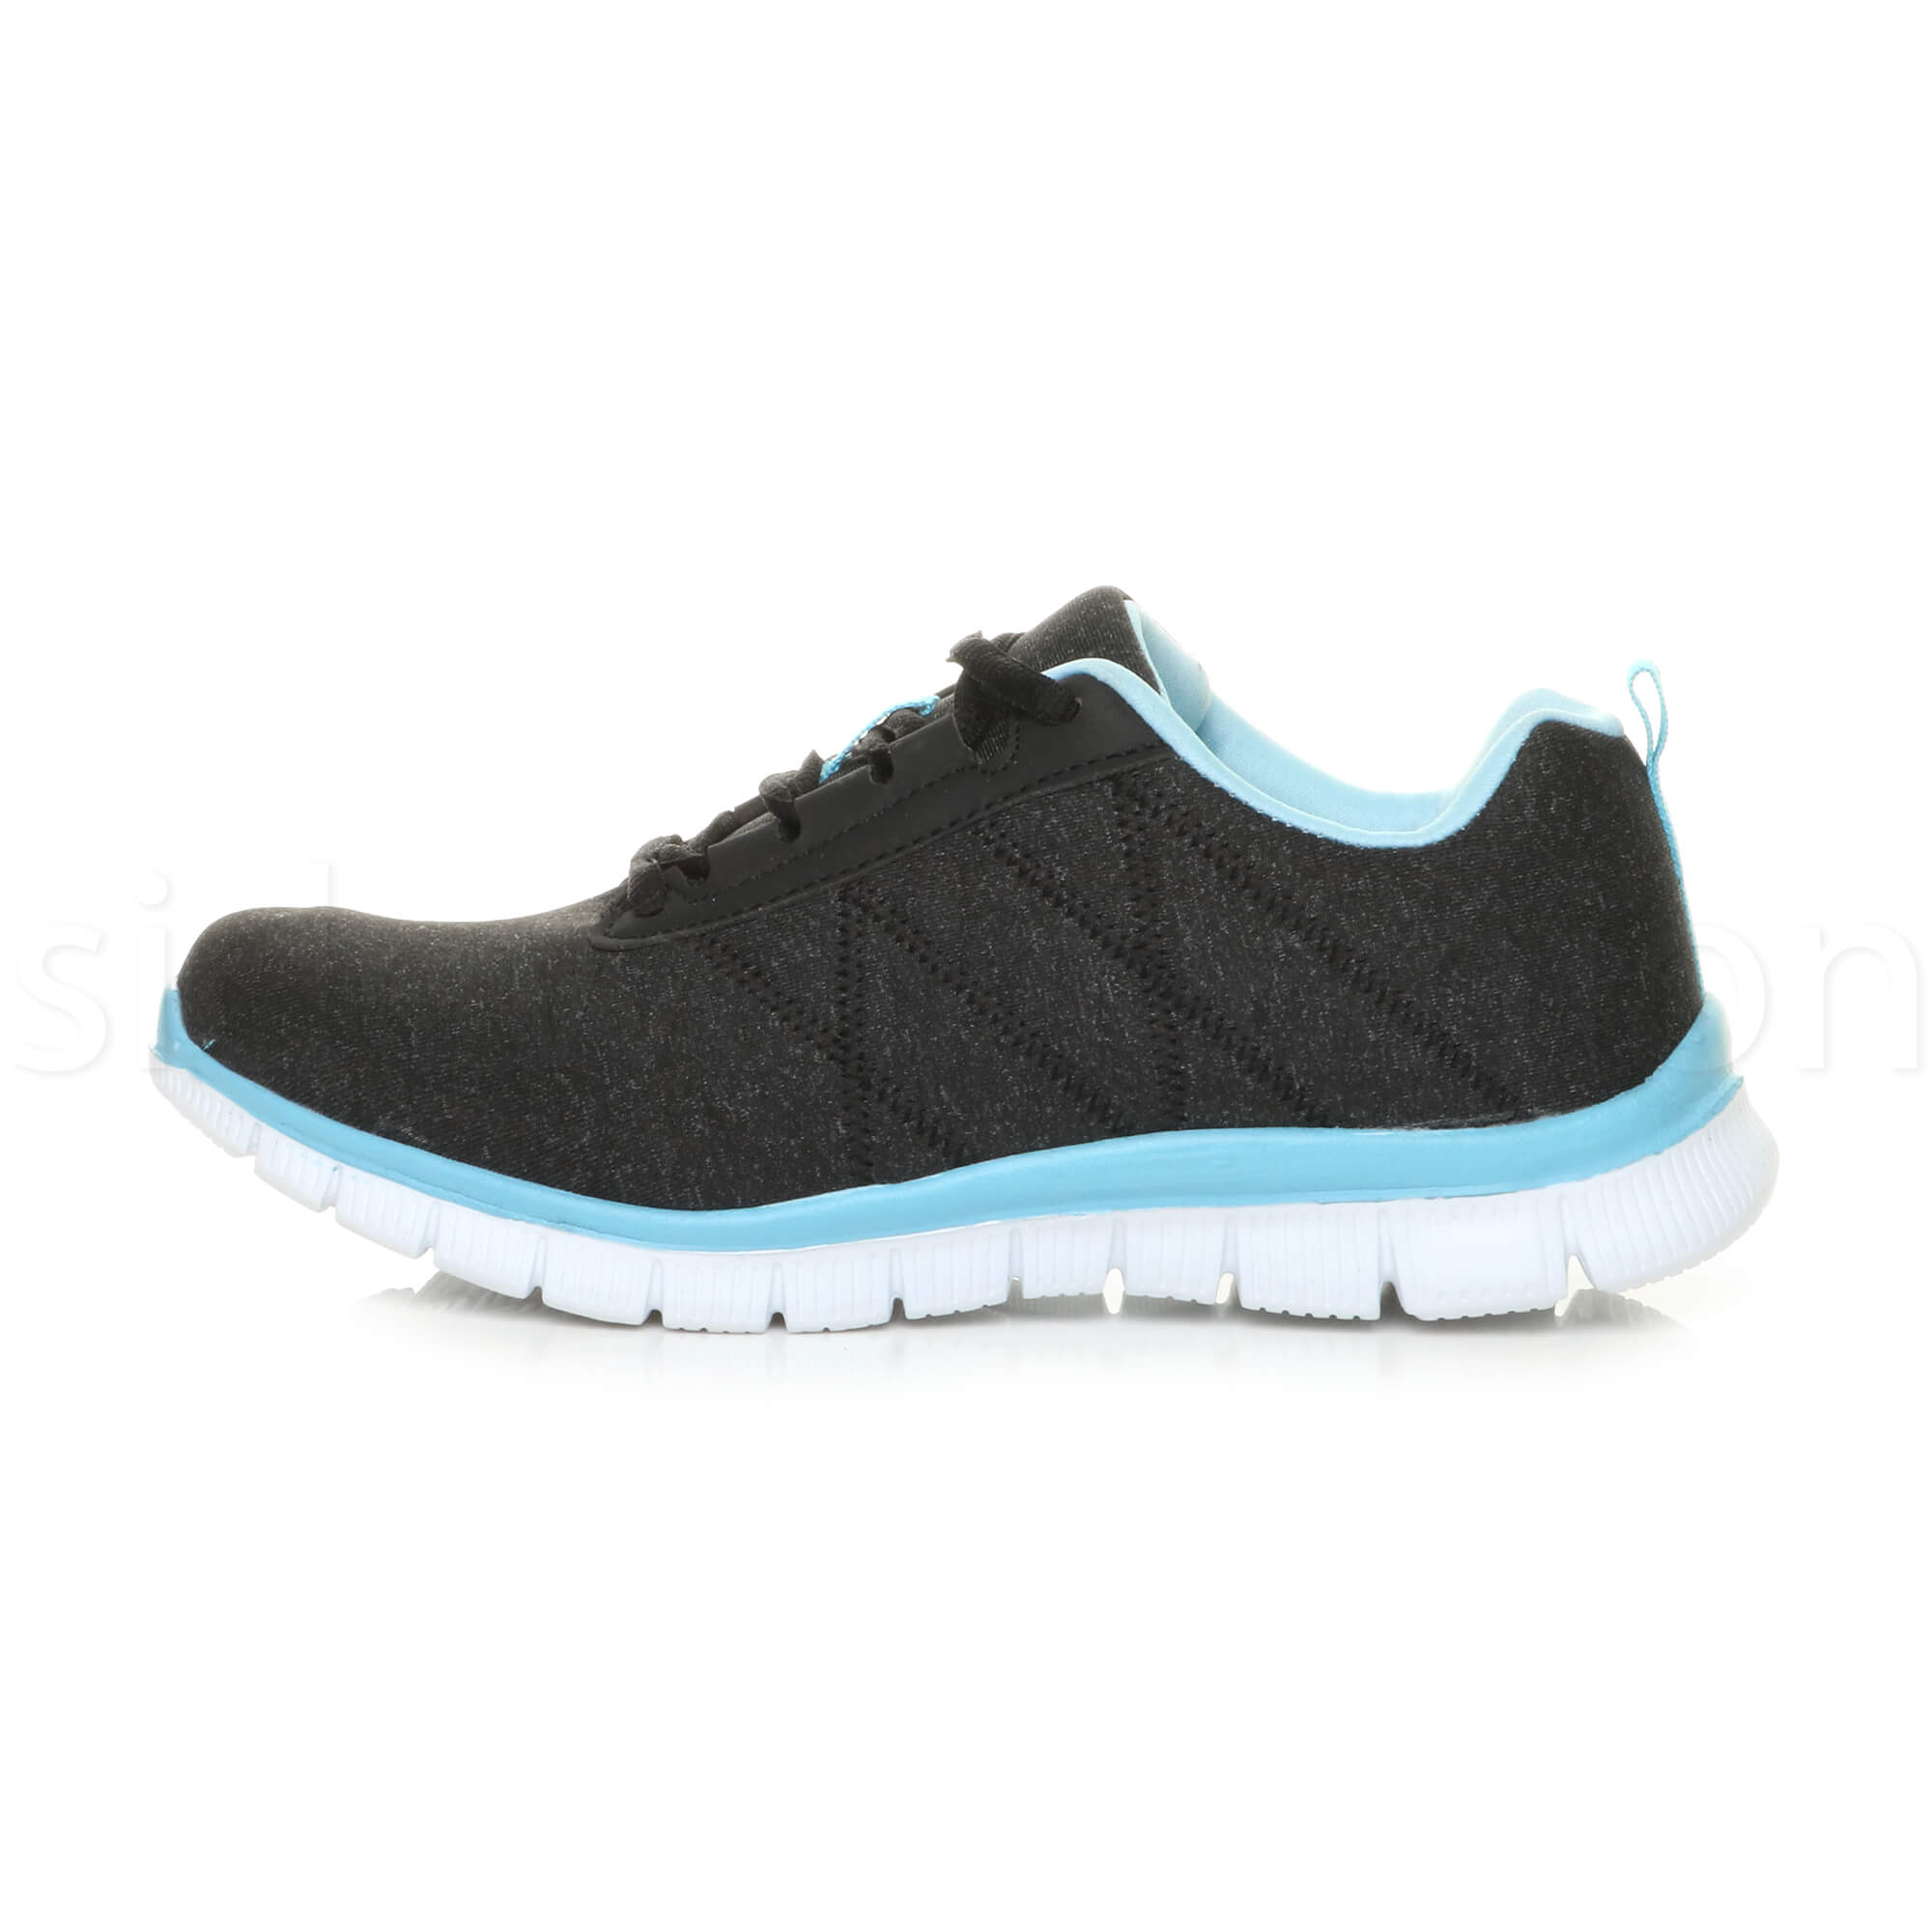 Womens-ladies-comfort-memory-foam-lace-up-trainers-activewear-sneakers-gym-shoes thumbnail 9